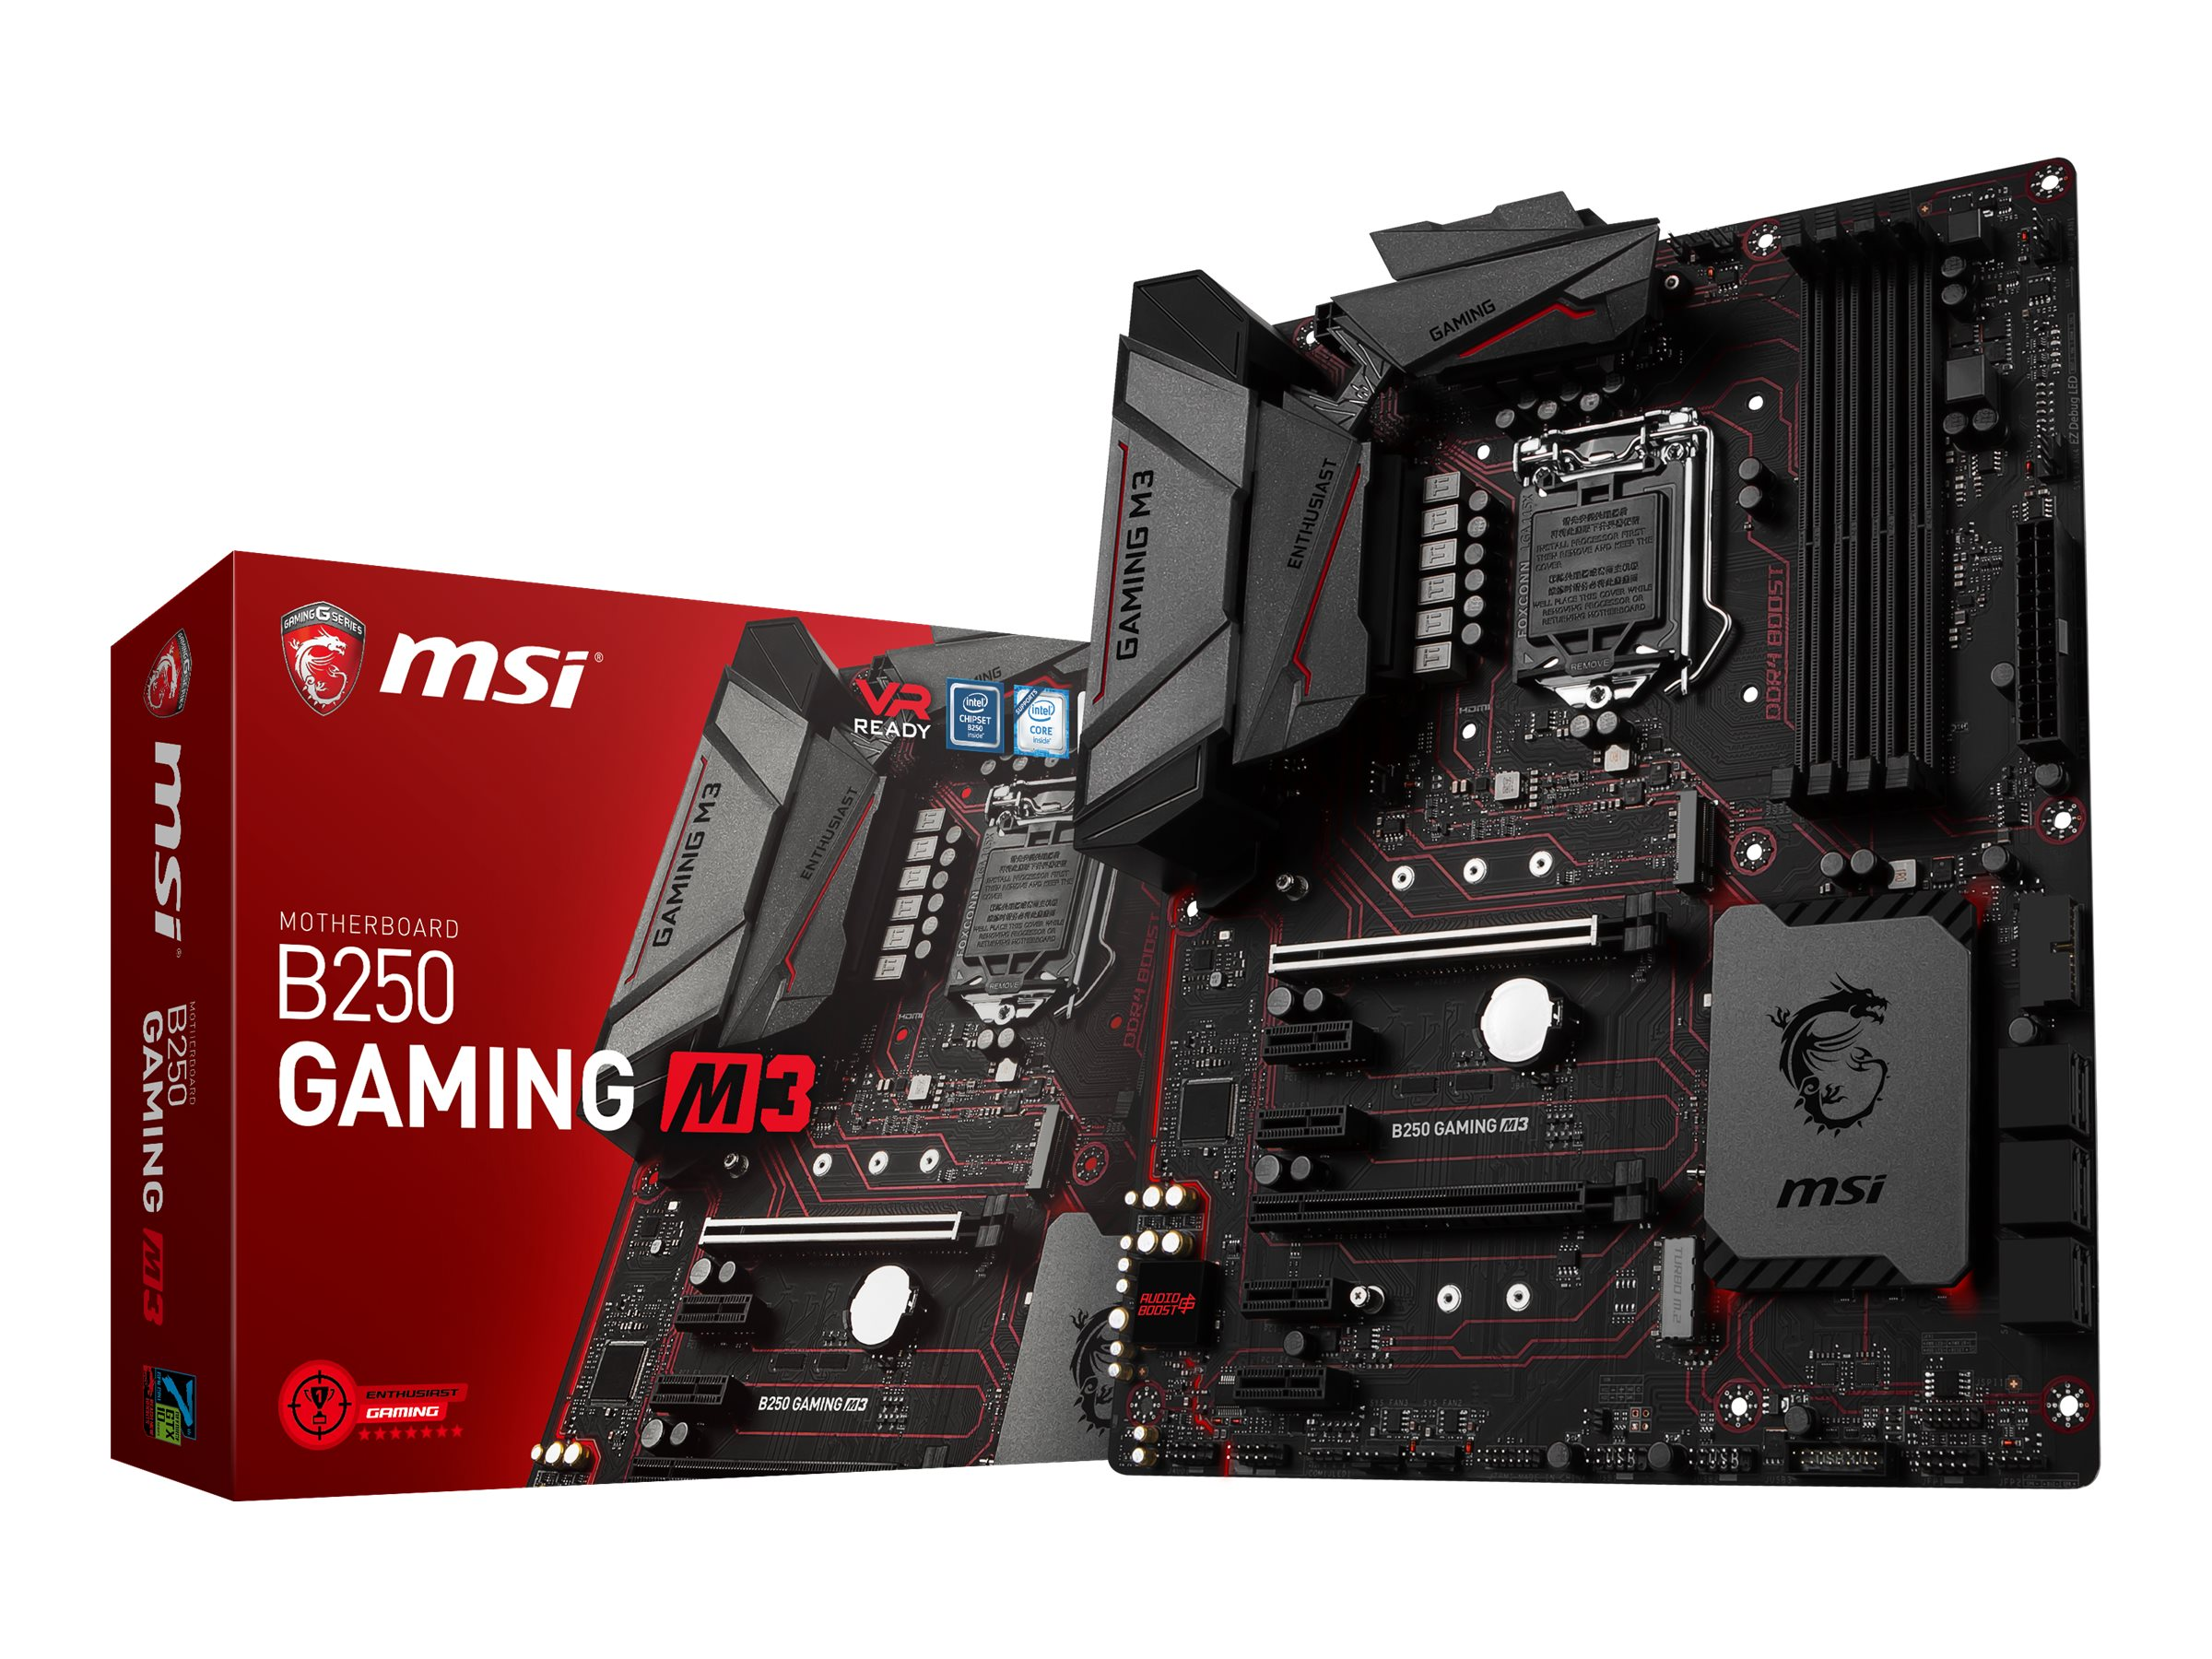 Microstar Motherboard, B250 Gaming M3, B250 GAMING M3, 33561349, Motherboards